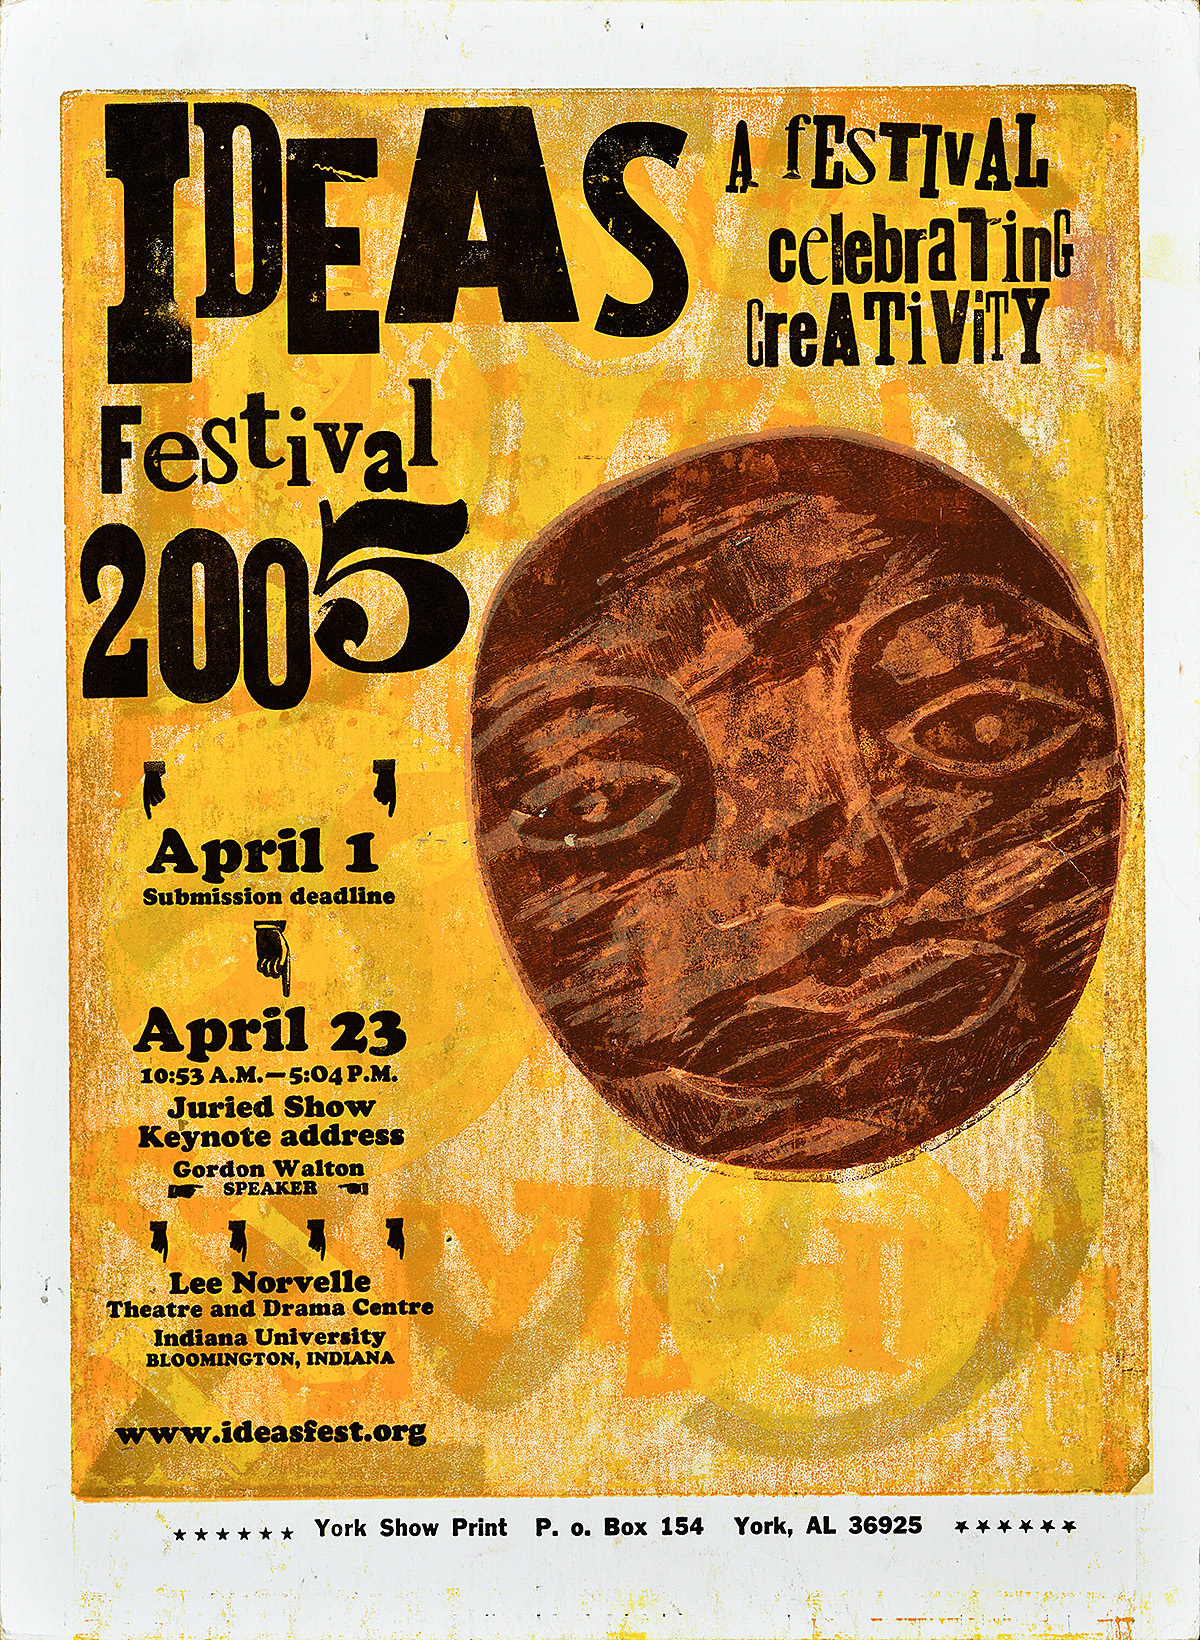 letterpress poster with a yellow background. on the right is a large man in the moon style carved face. on the left is the title ideas festival 2005 and then a listing of events